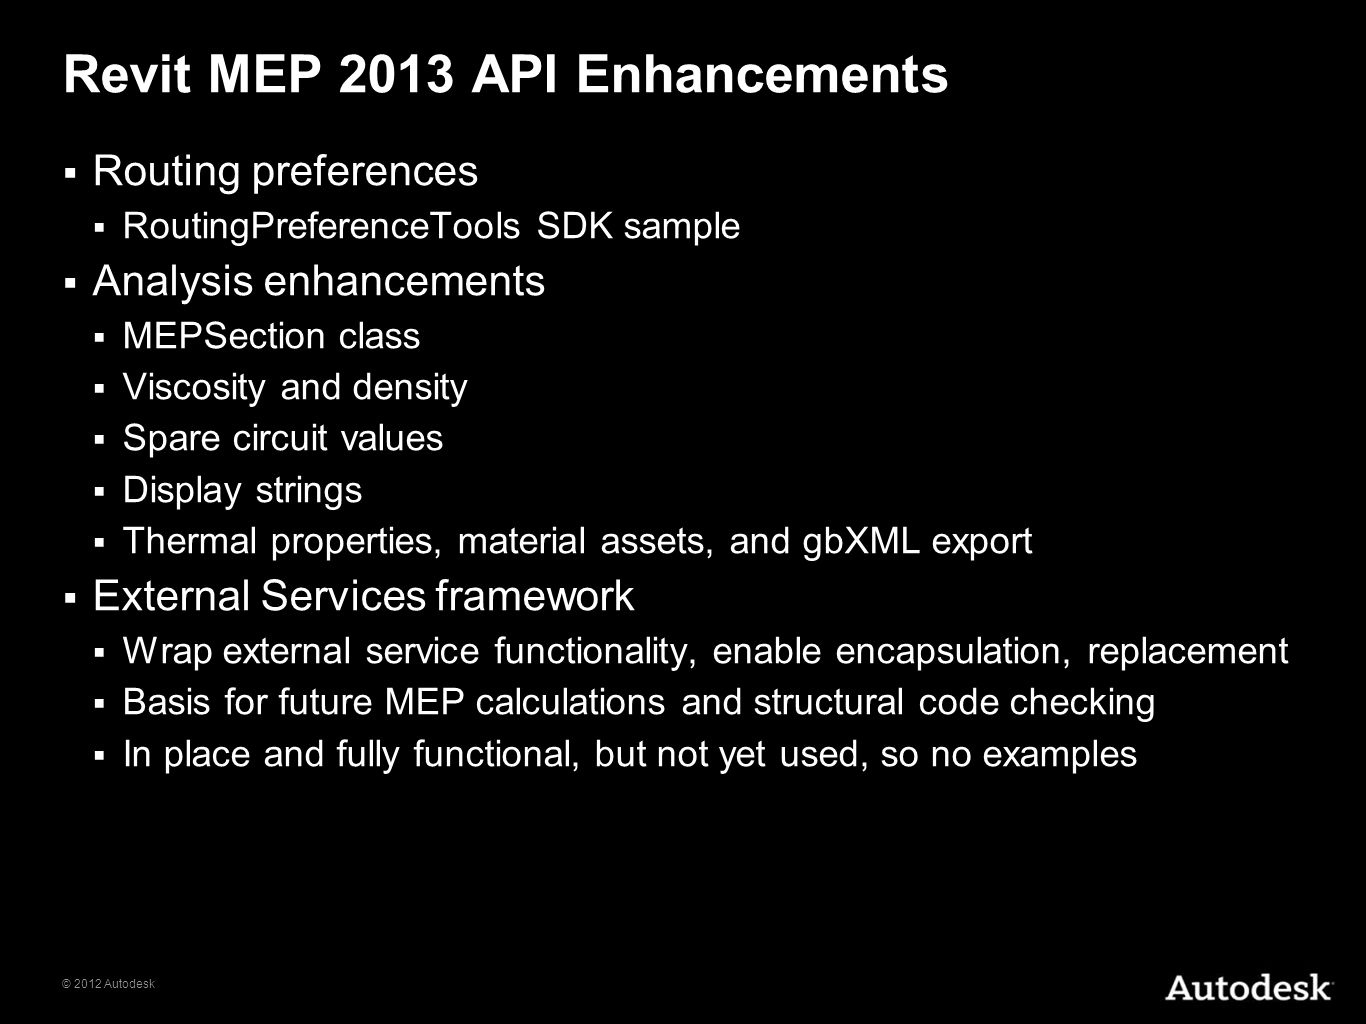 © 2012 Autodesk Revit MEP 2013 API Enhancements Routing preferences RoutingPreferenceTools SDK sample Analysis enhancements MEPSection class Viscosity